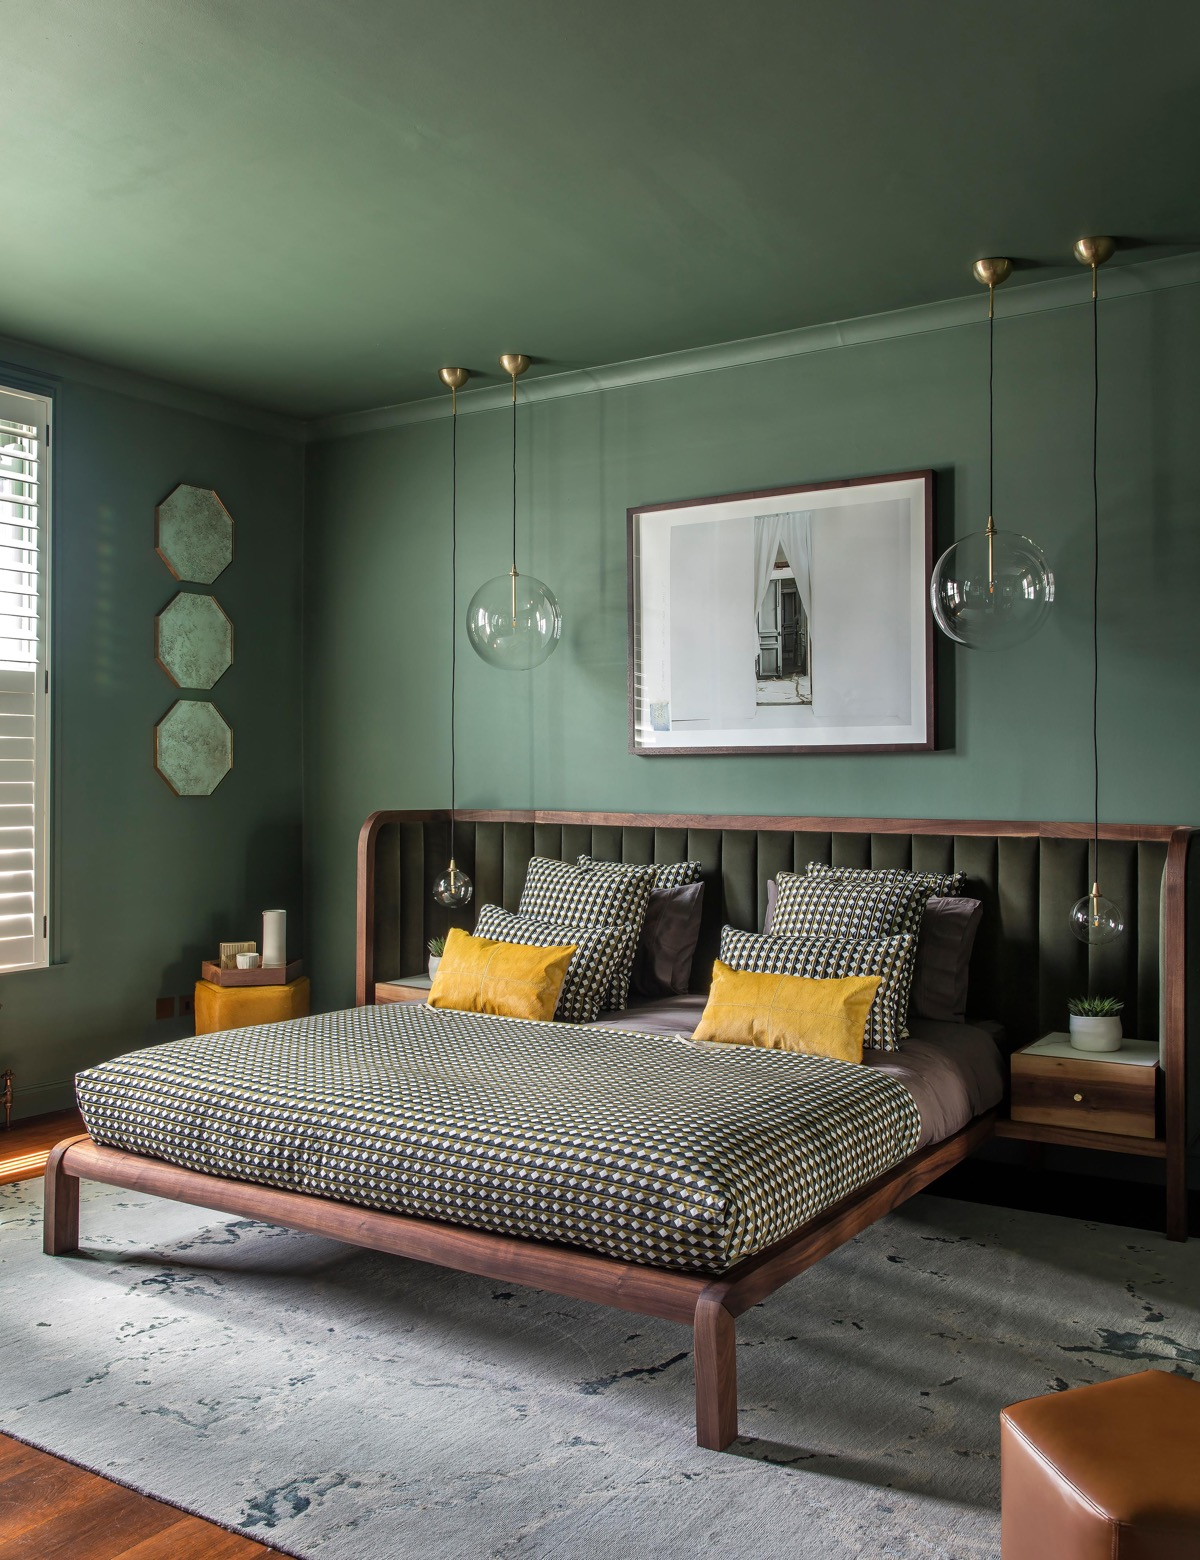 Image of: 51 Green Bedrooms With Tips And Accessories To Help You Design Yours